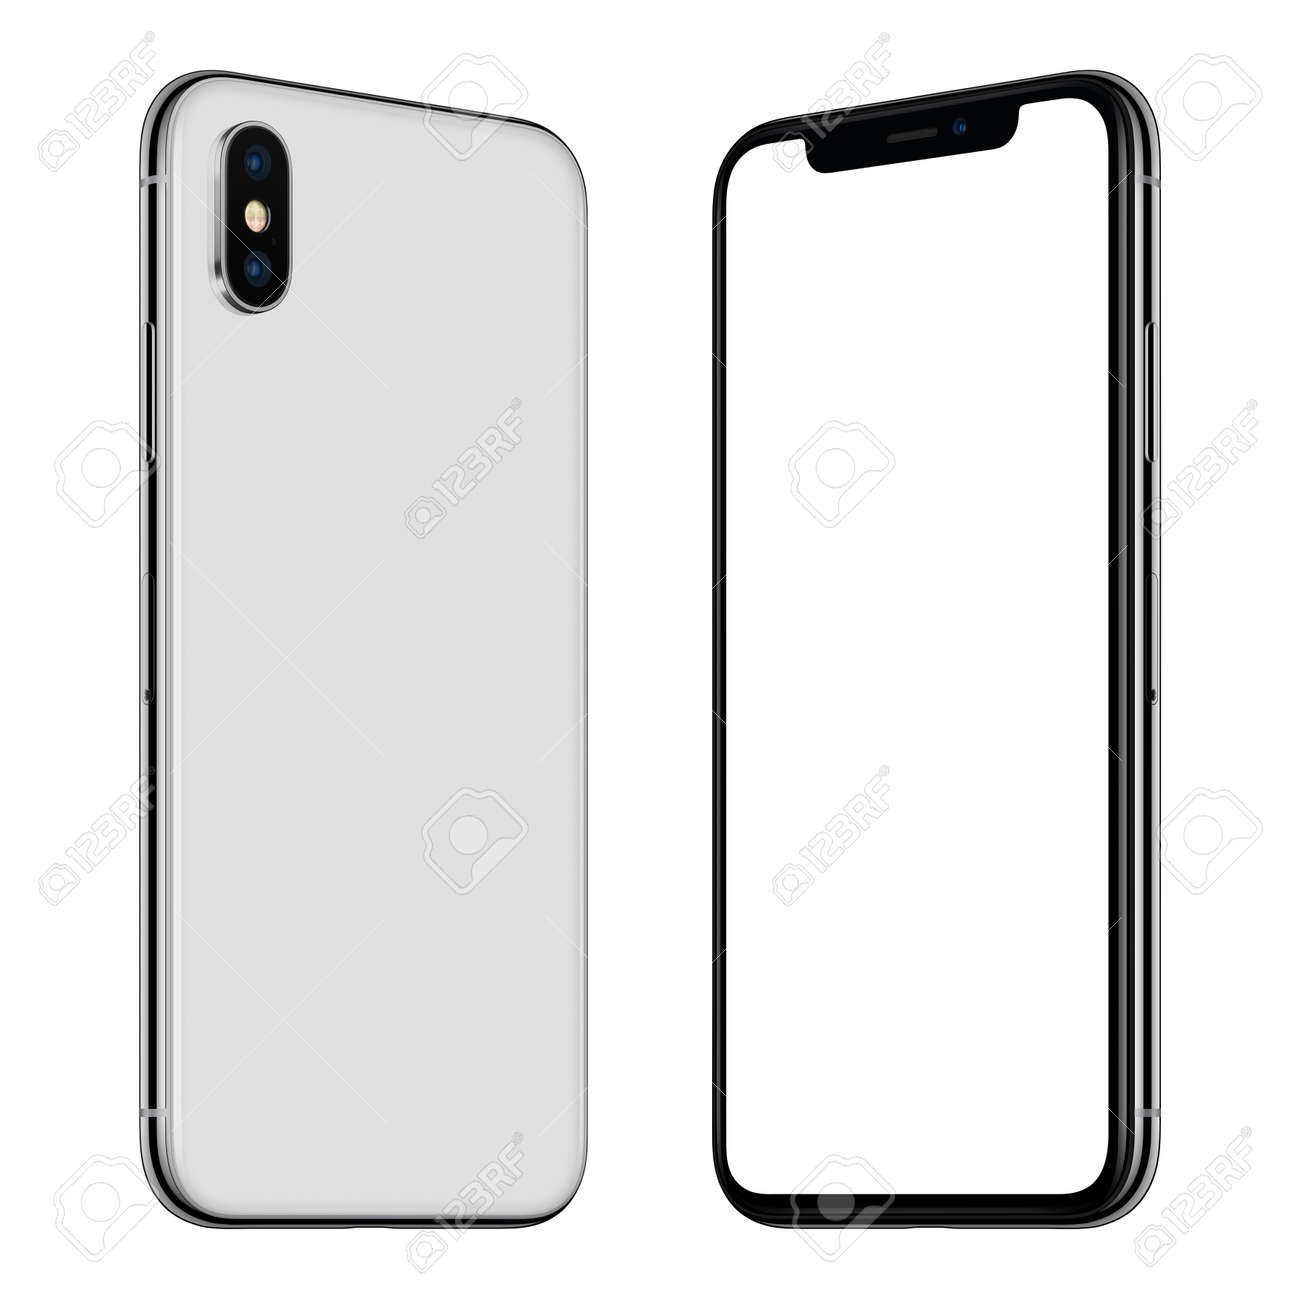 New white smartphone mockup front and back sides rotated and facing each other - 89620691